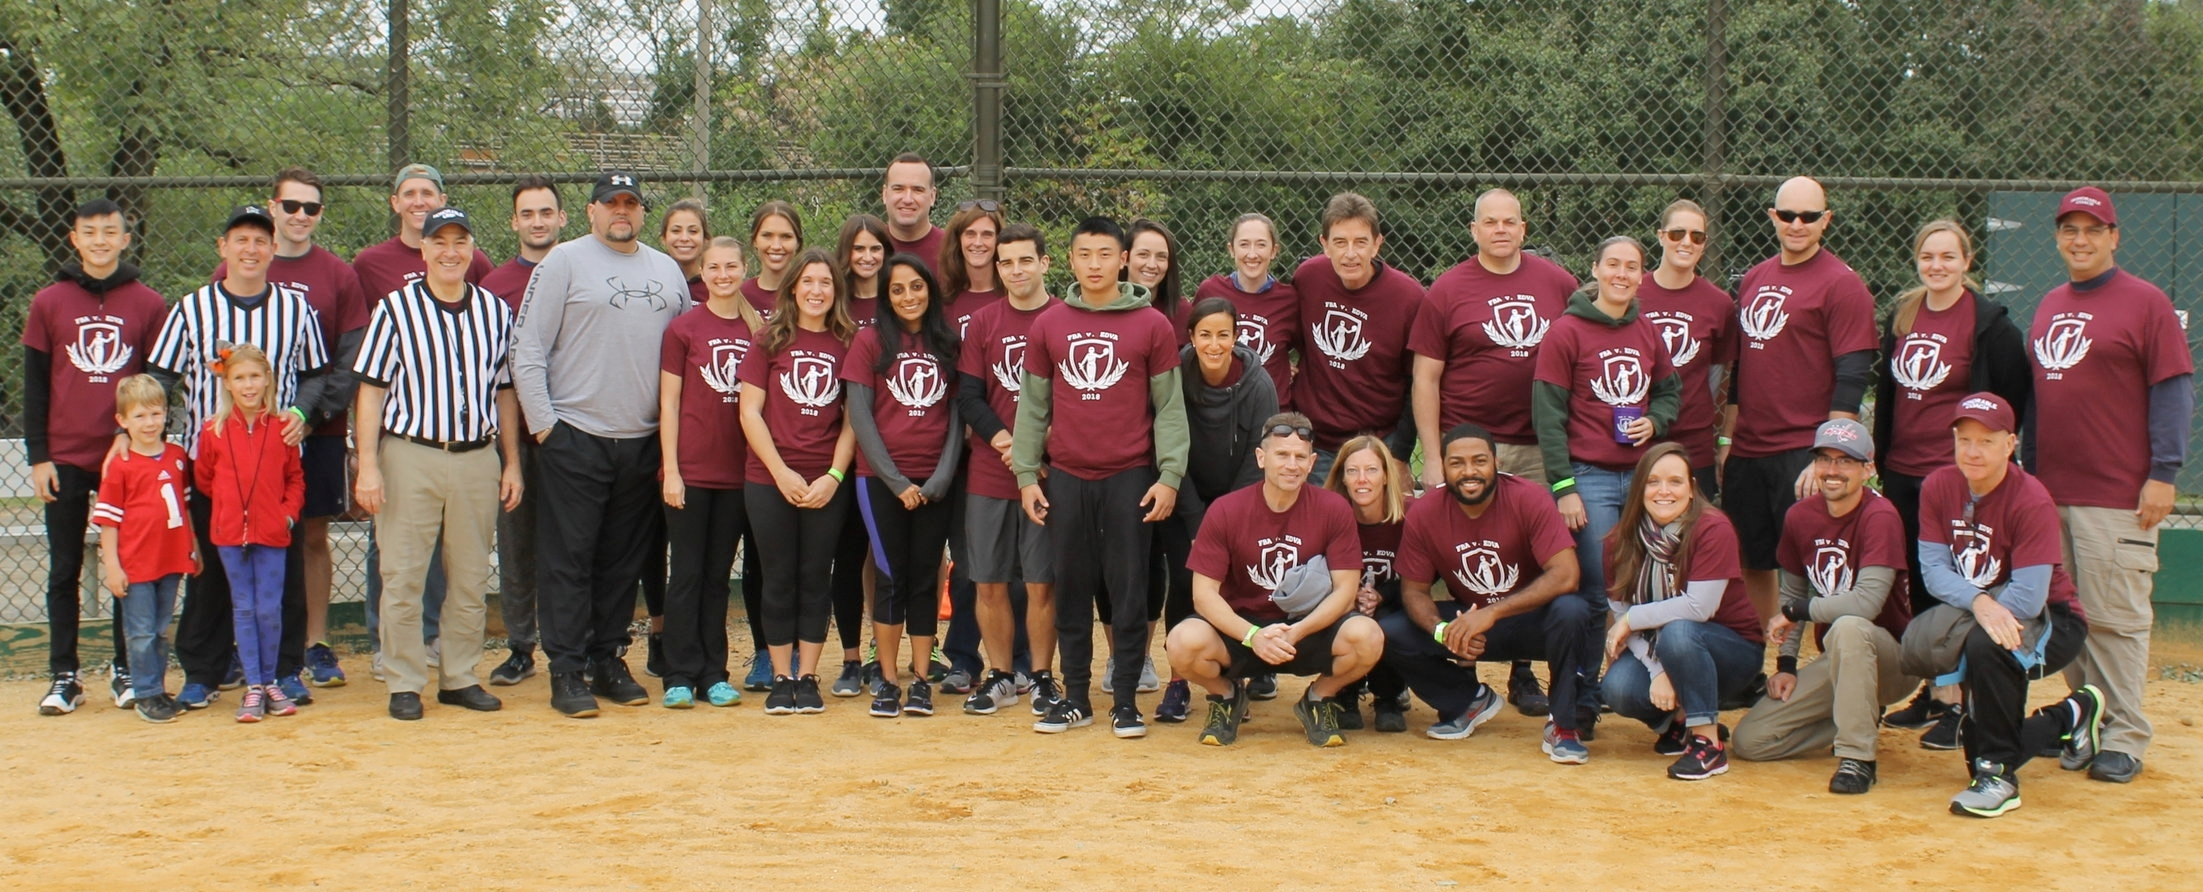 Courthouse Team, coached by Judge Nachmanoff and Judge O'Grady